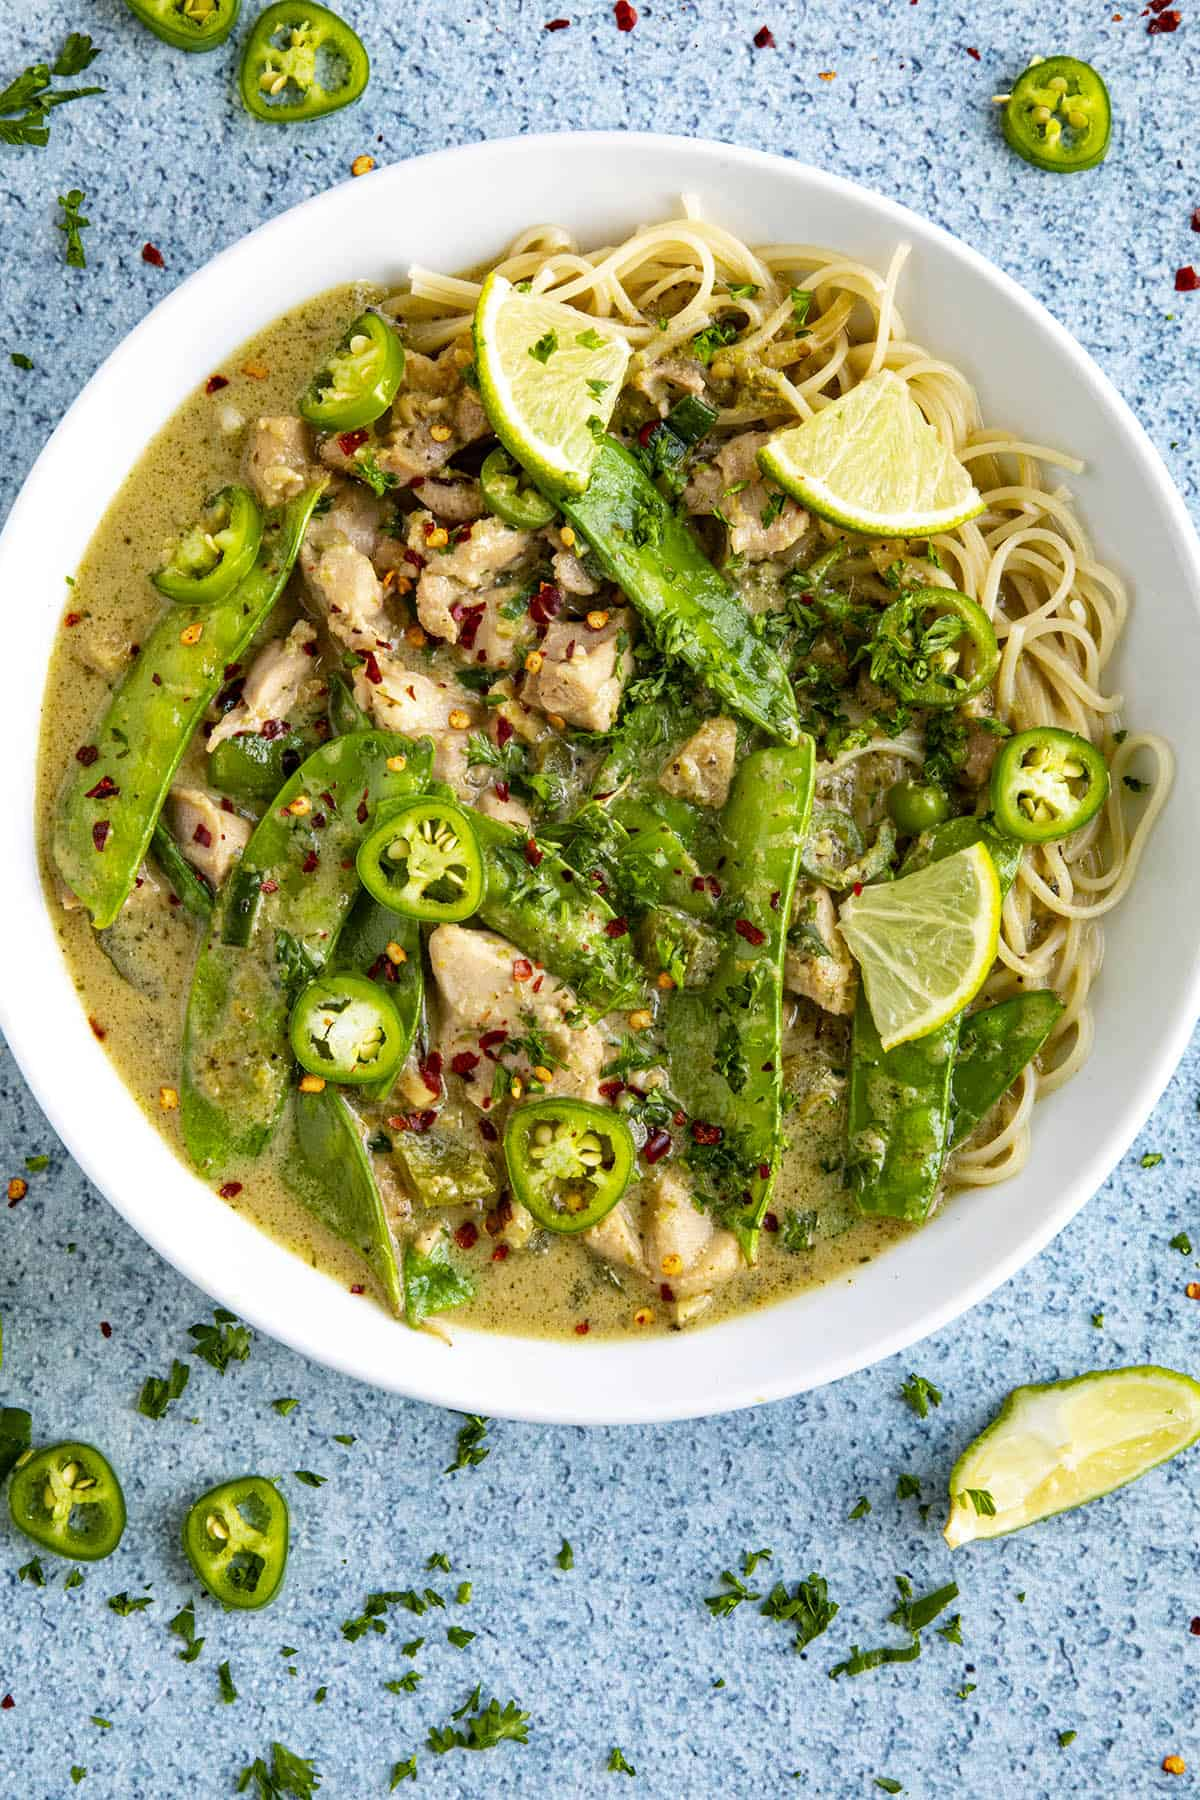 Delicious green curry with lots of garnish